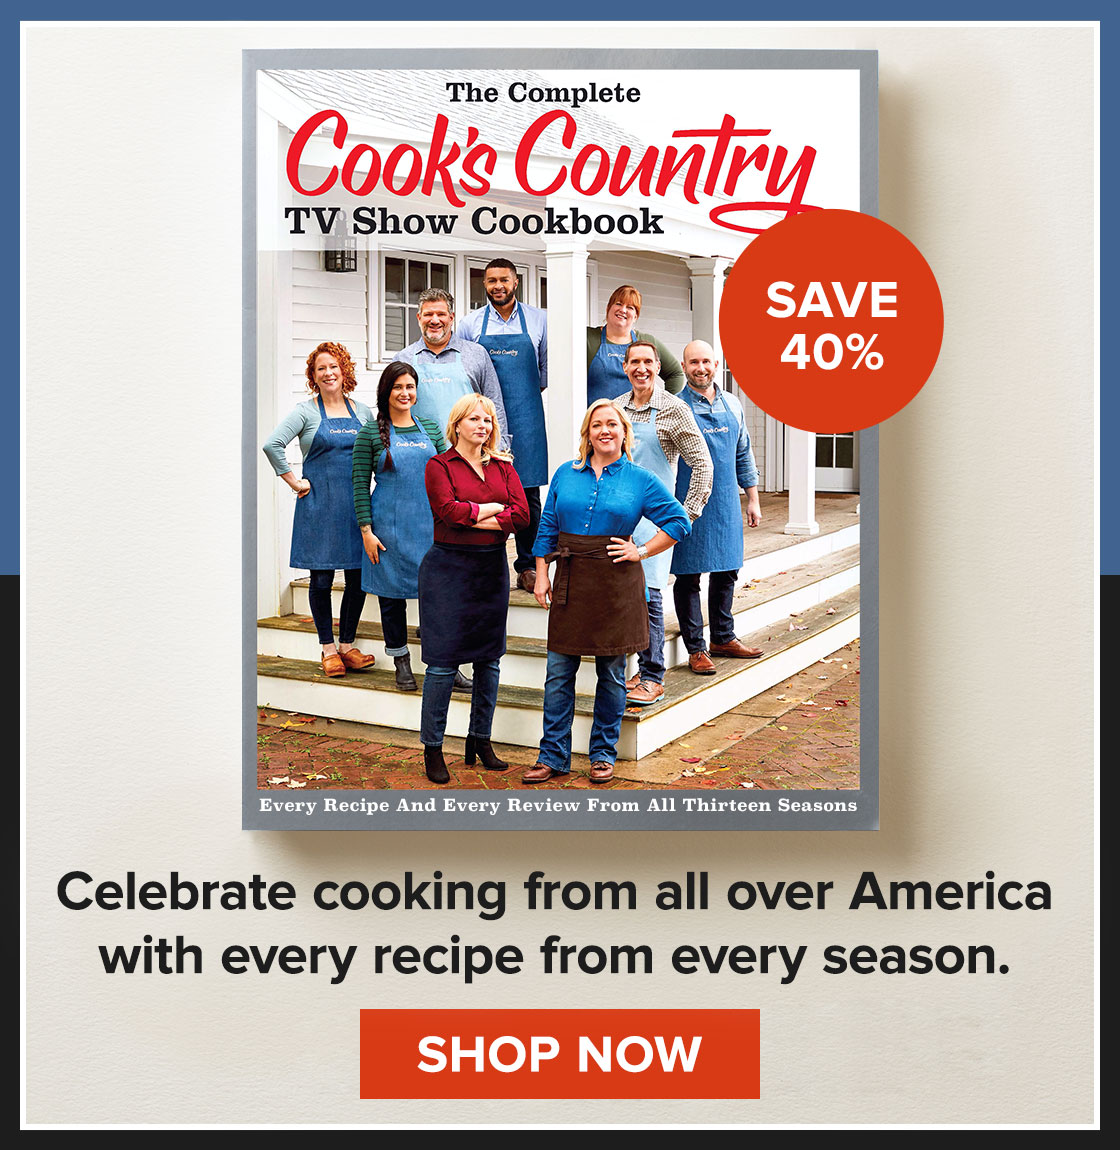 Save 40% on the Cook's Country TV Cookbook! Celebrate cooking from all over America with every recipe from every season. SHOP NOW.